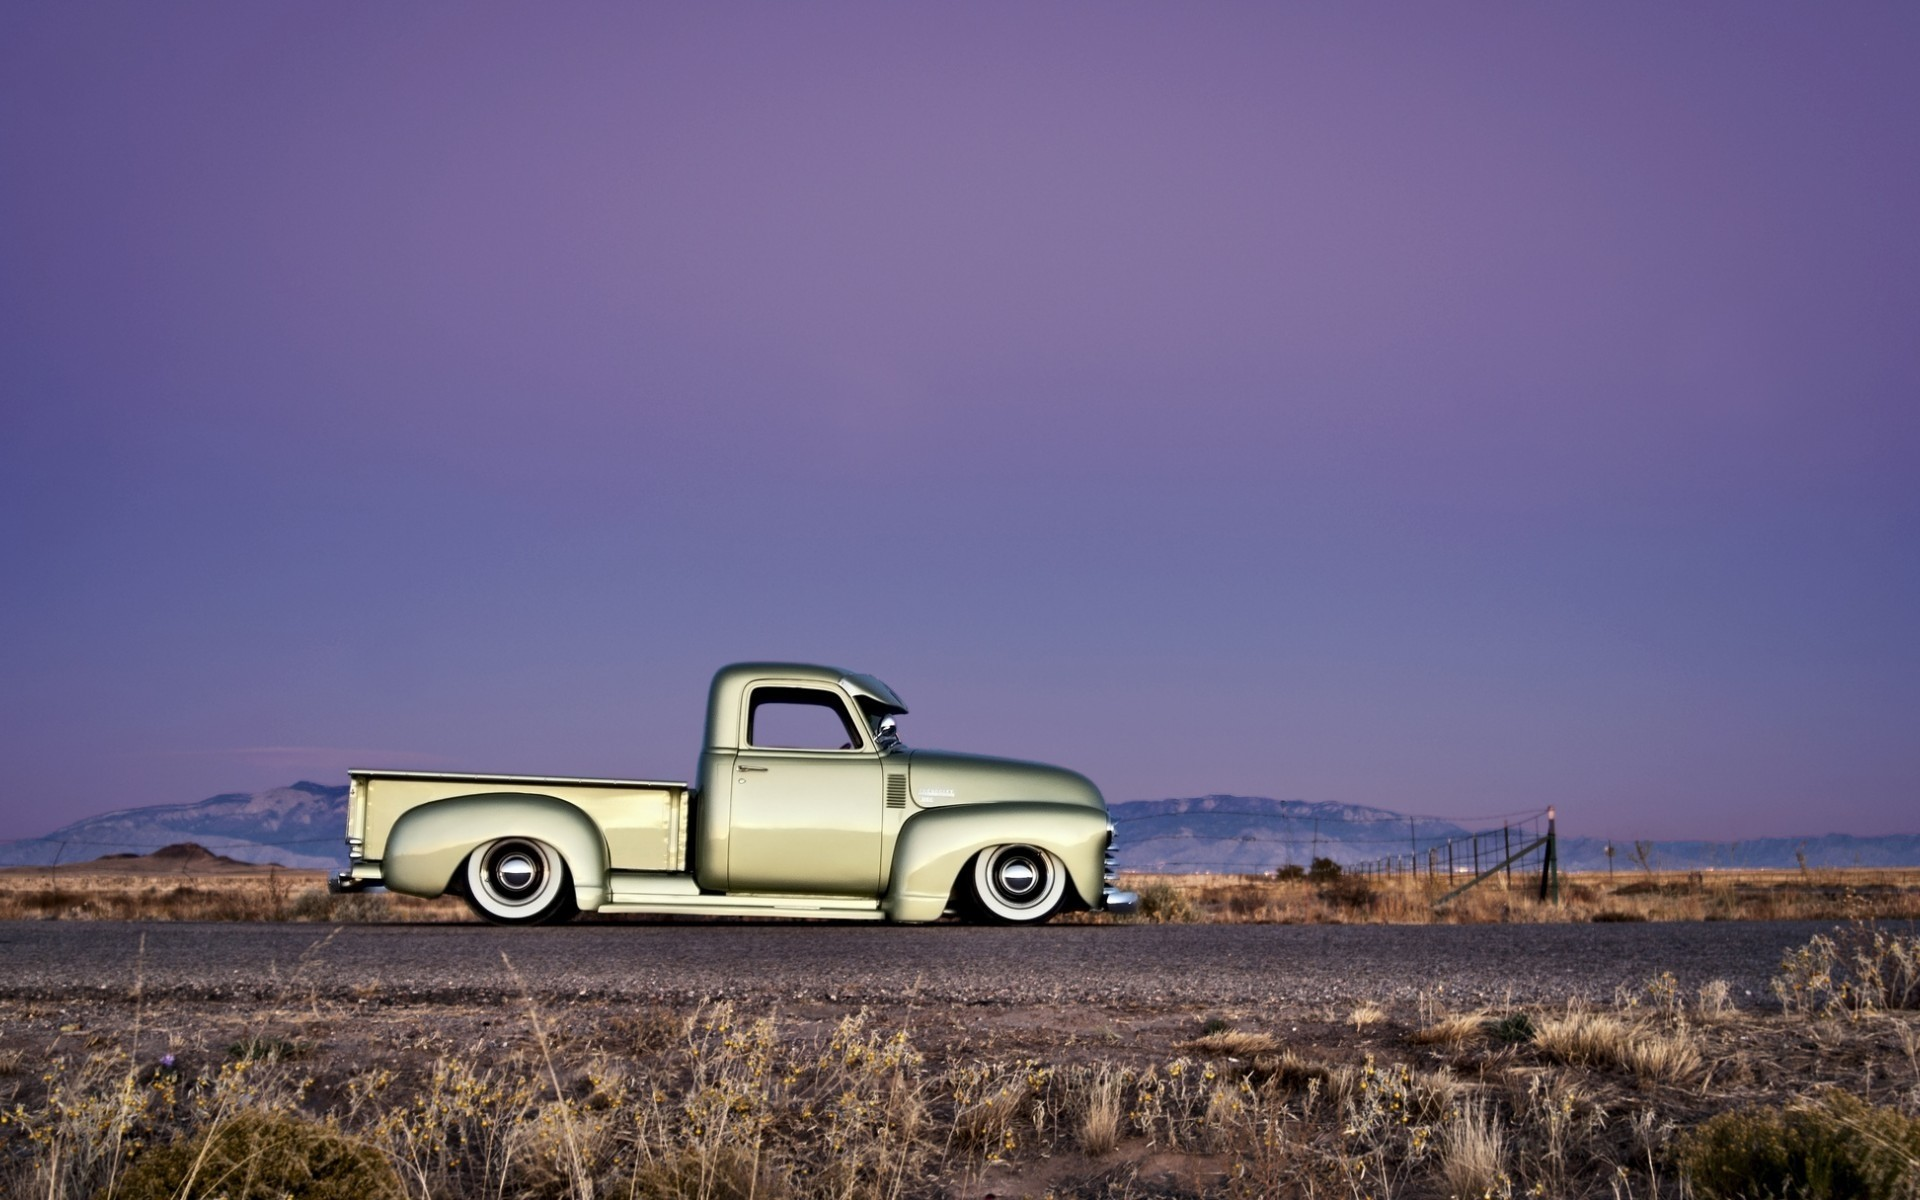 chevrolet vehicle transportation system car desert landscape outdoors sky nature travel chevy vintage cars old cars classic cars